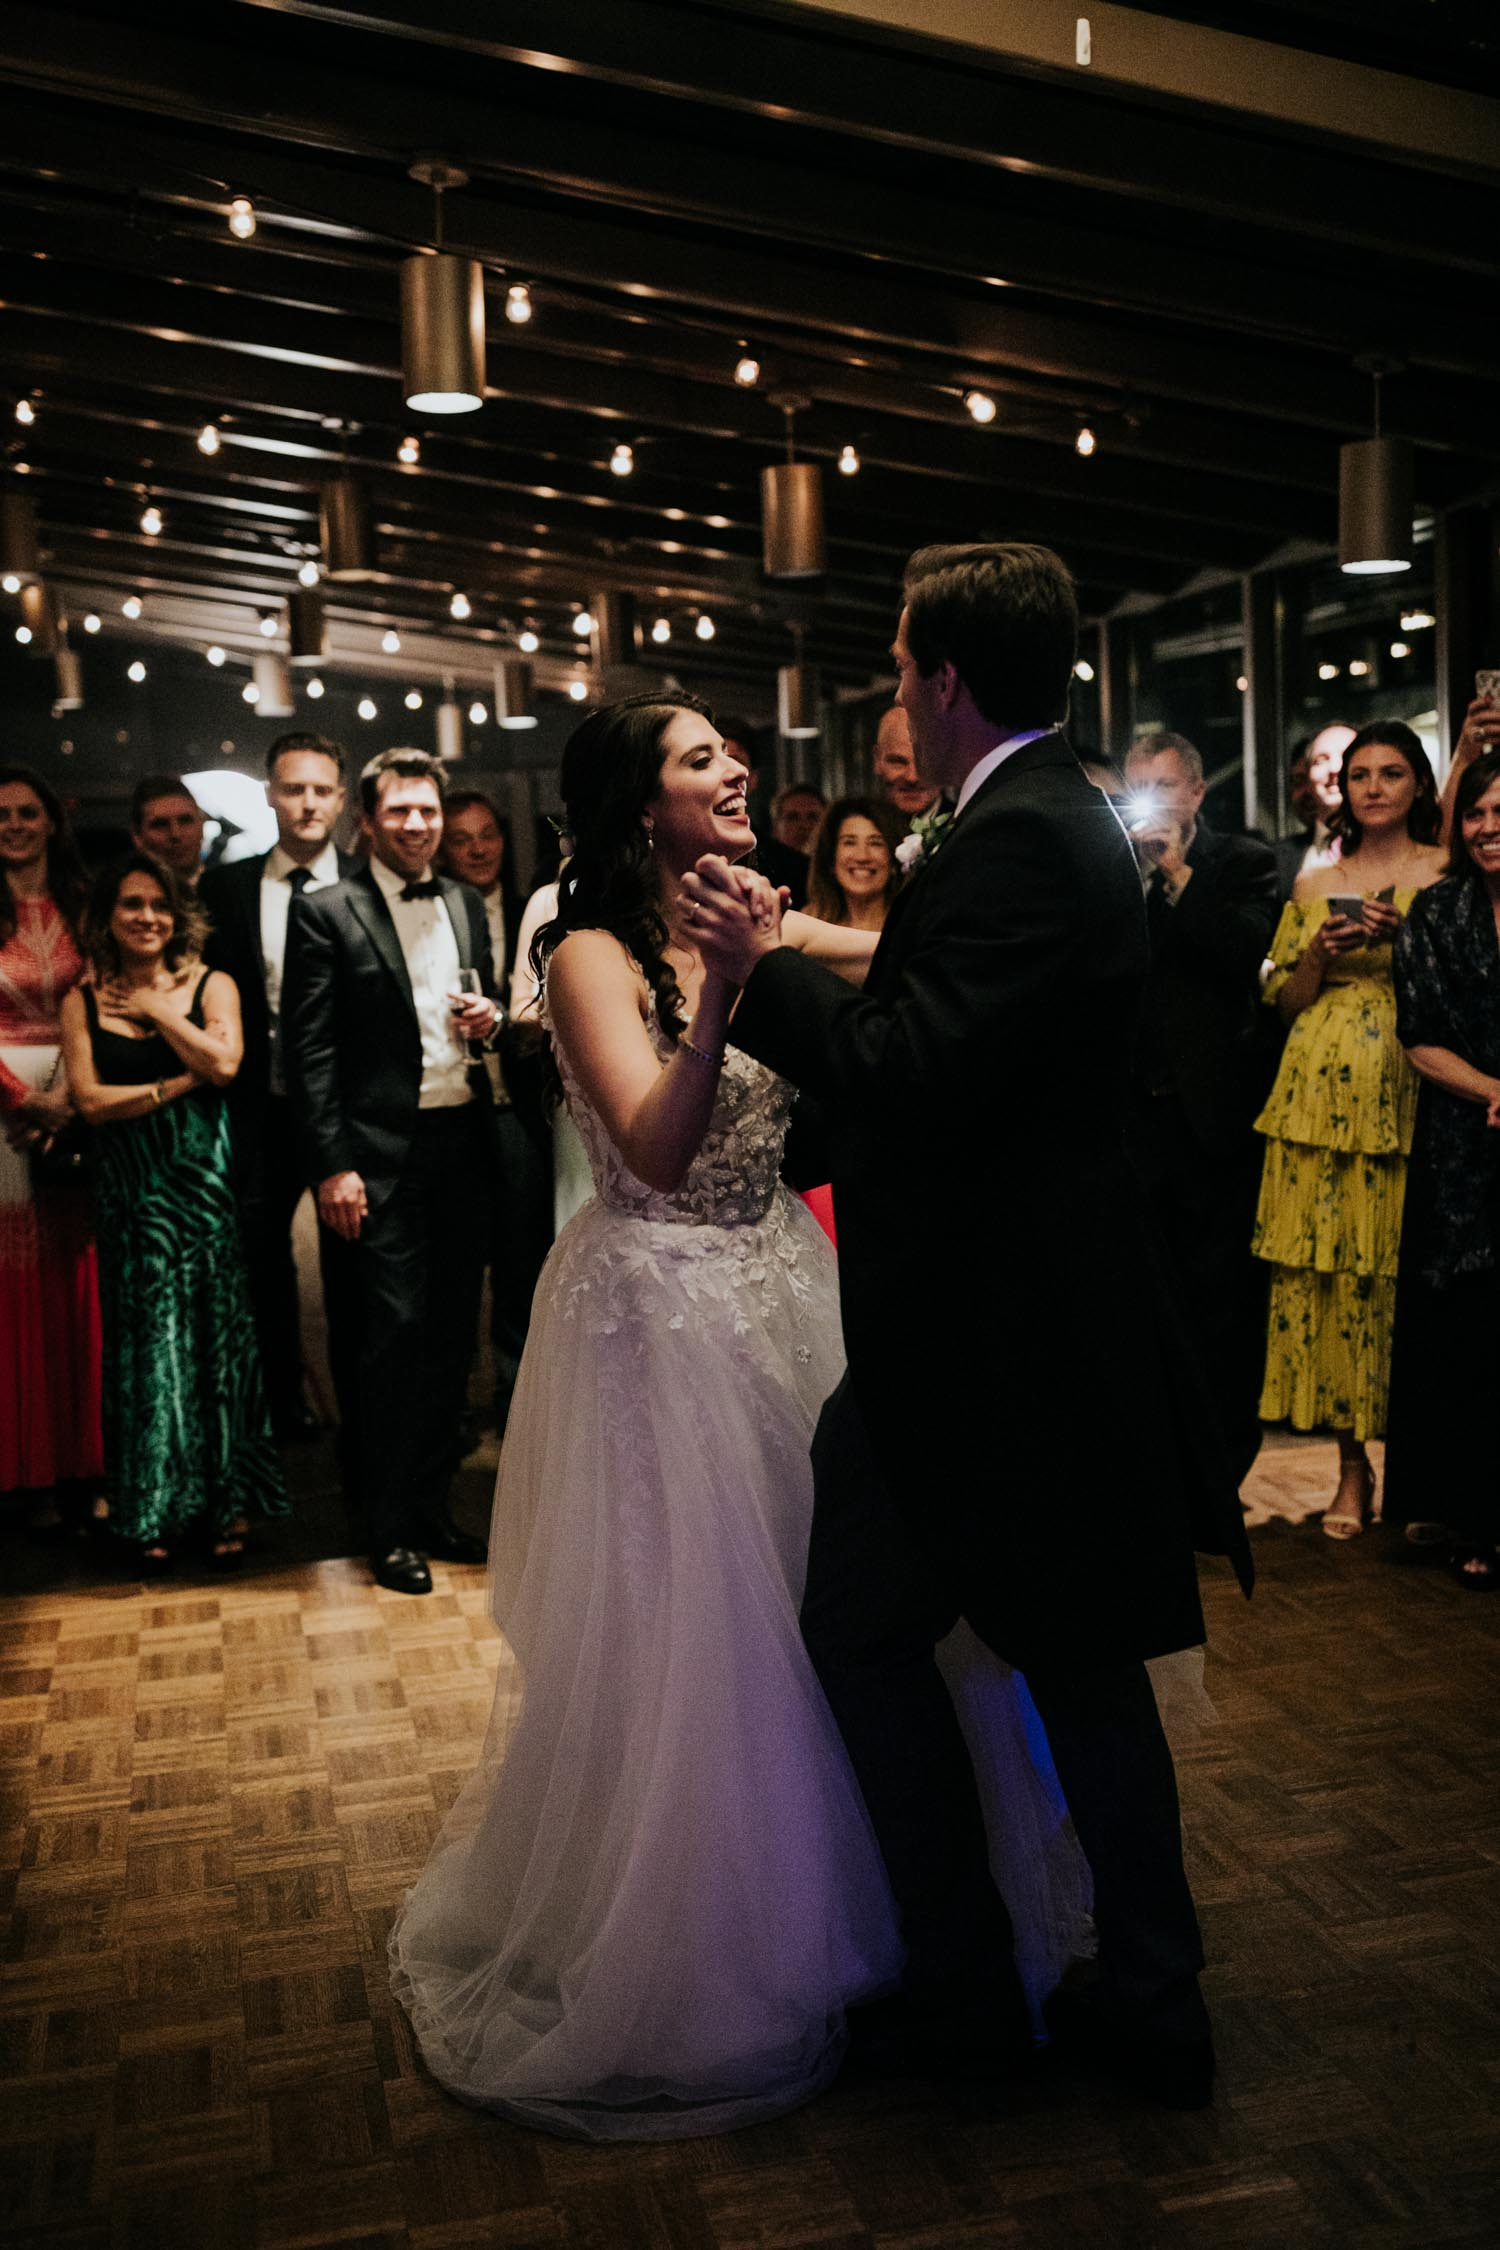 Bride and groom's first dance at Brock House Vancouver Wedding Venue